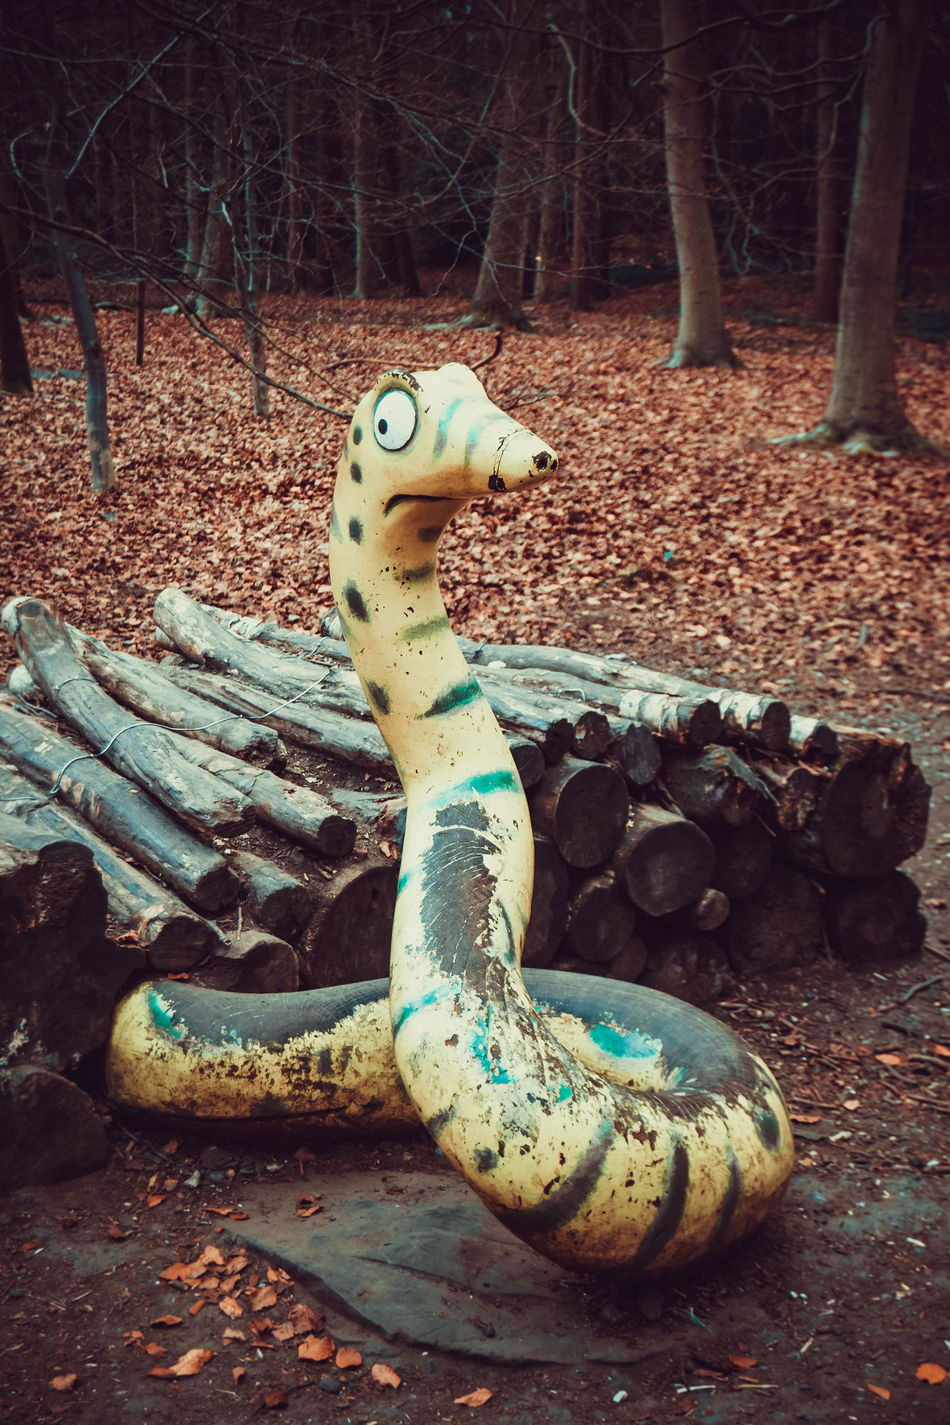 Day Forest Forest Walk Gruffalo Gruffalo Trail Logs Lots Of Leaves Nature No People Outdoors Snake Snake Sculpture Trees Wooden Snake In Front Of Log Pile WoodLand